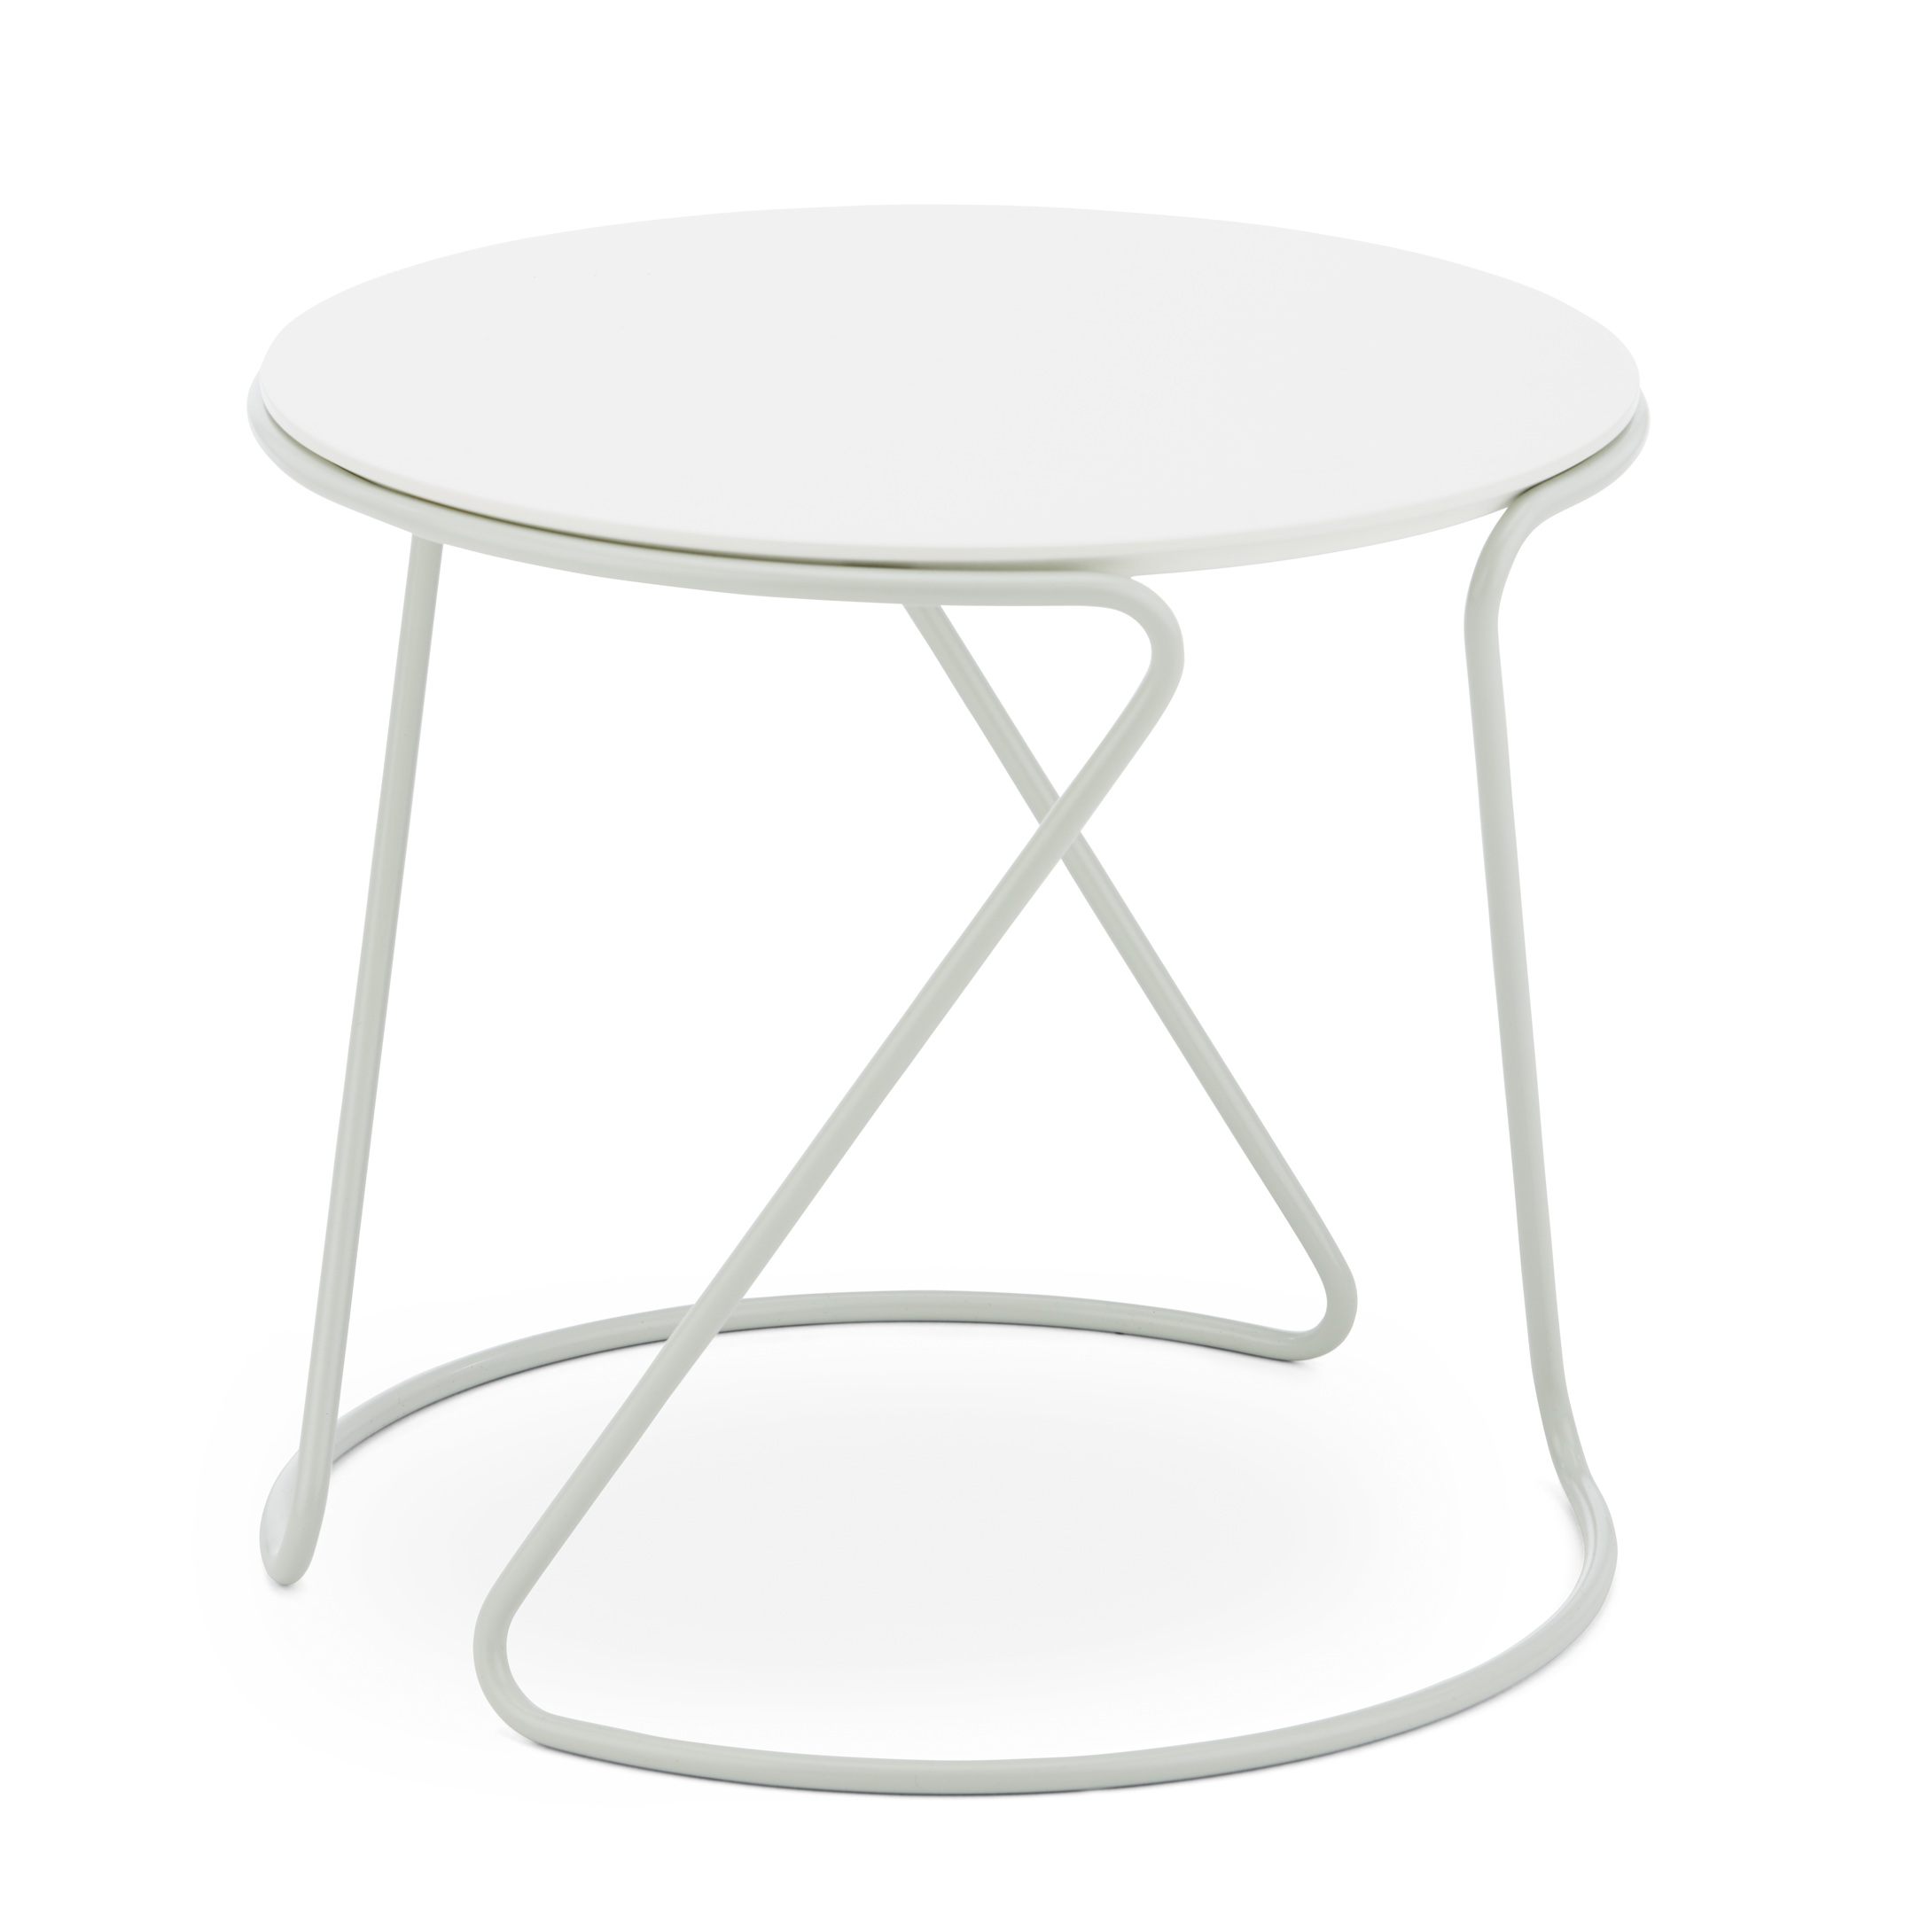 Table support Thonet S 18 design Uli Budde, White